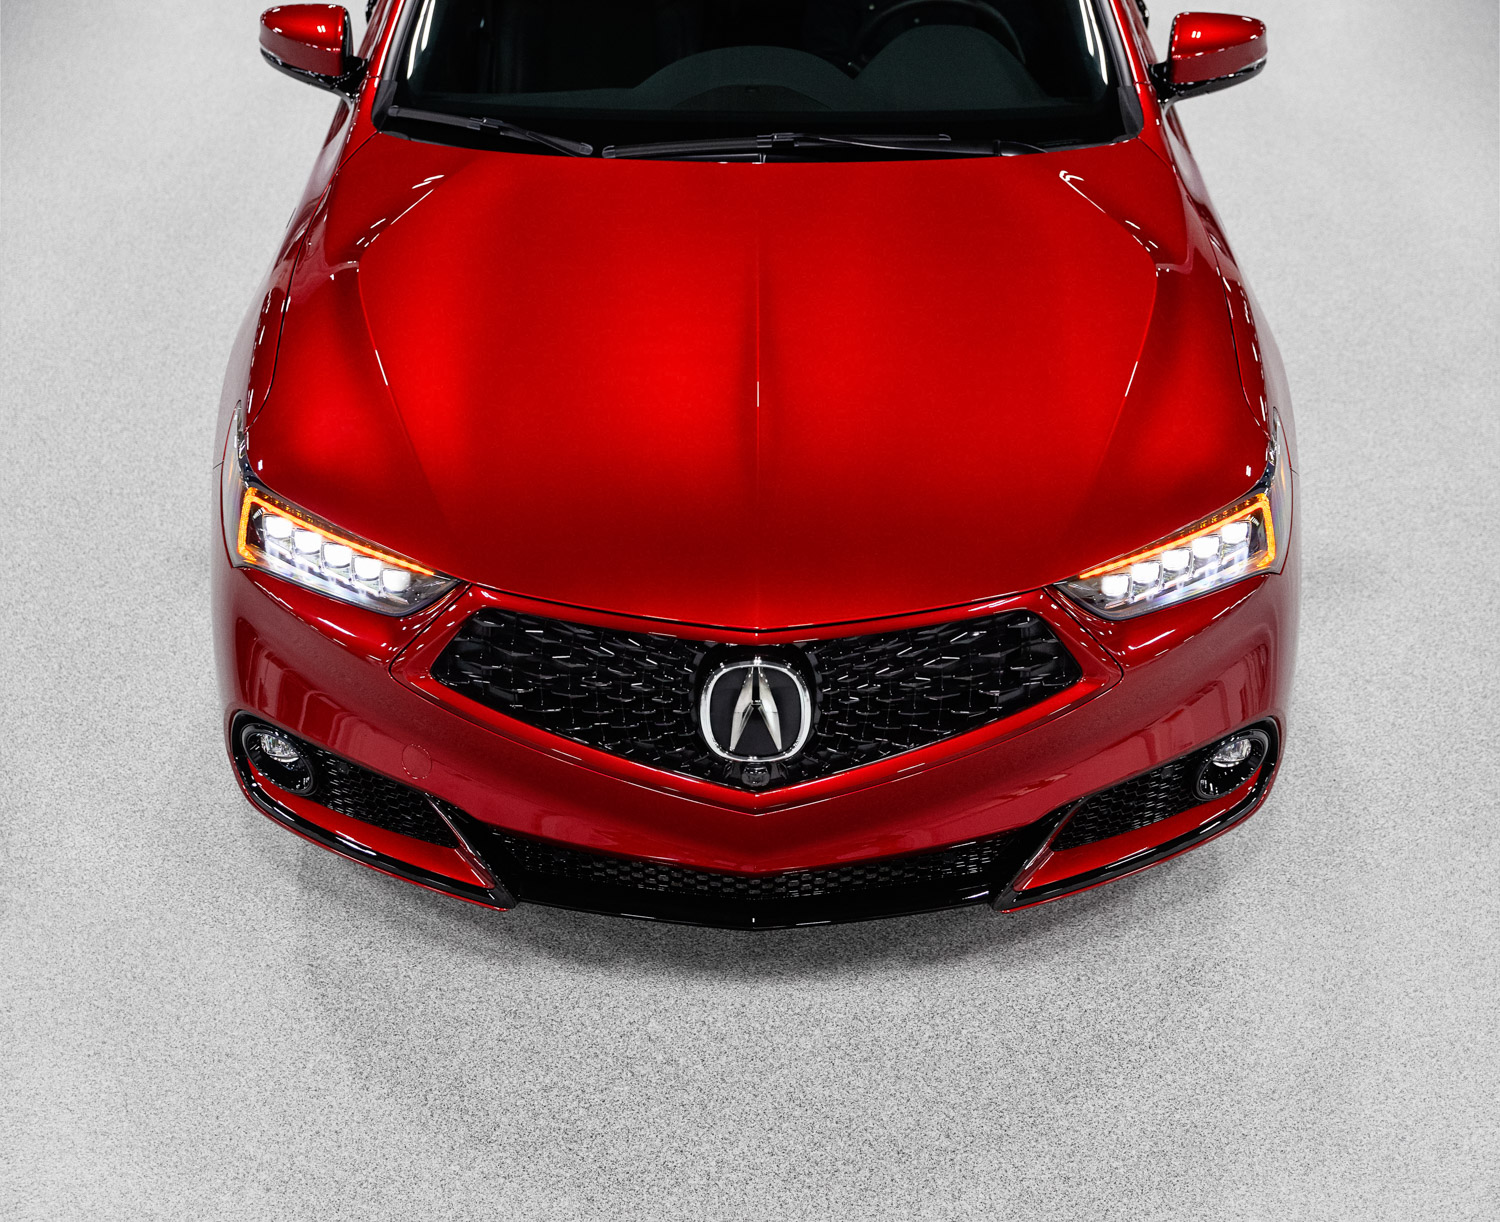 2020 Acura TLX PMC Edition hood front end